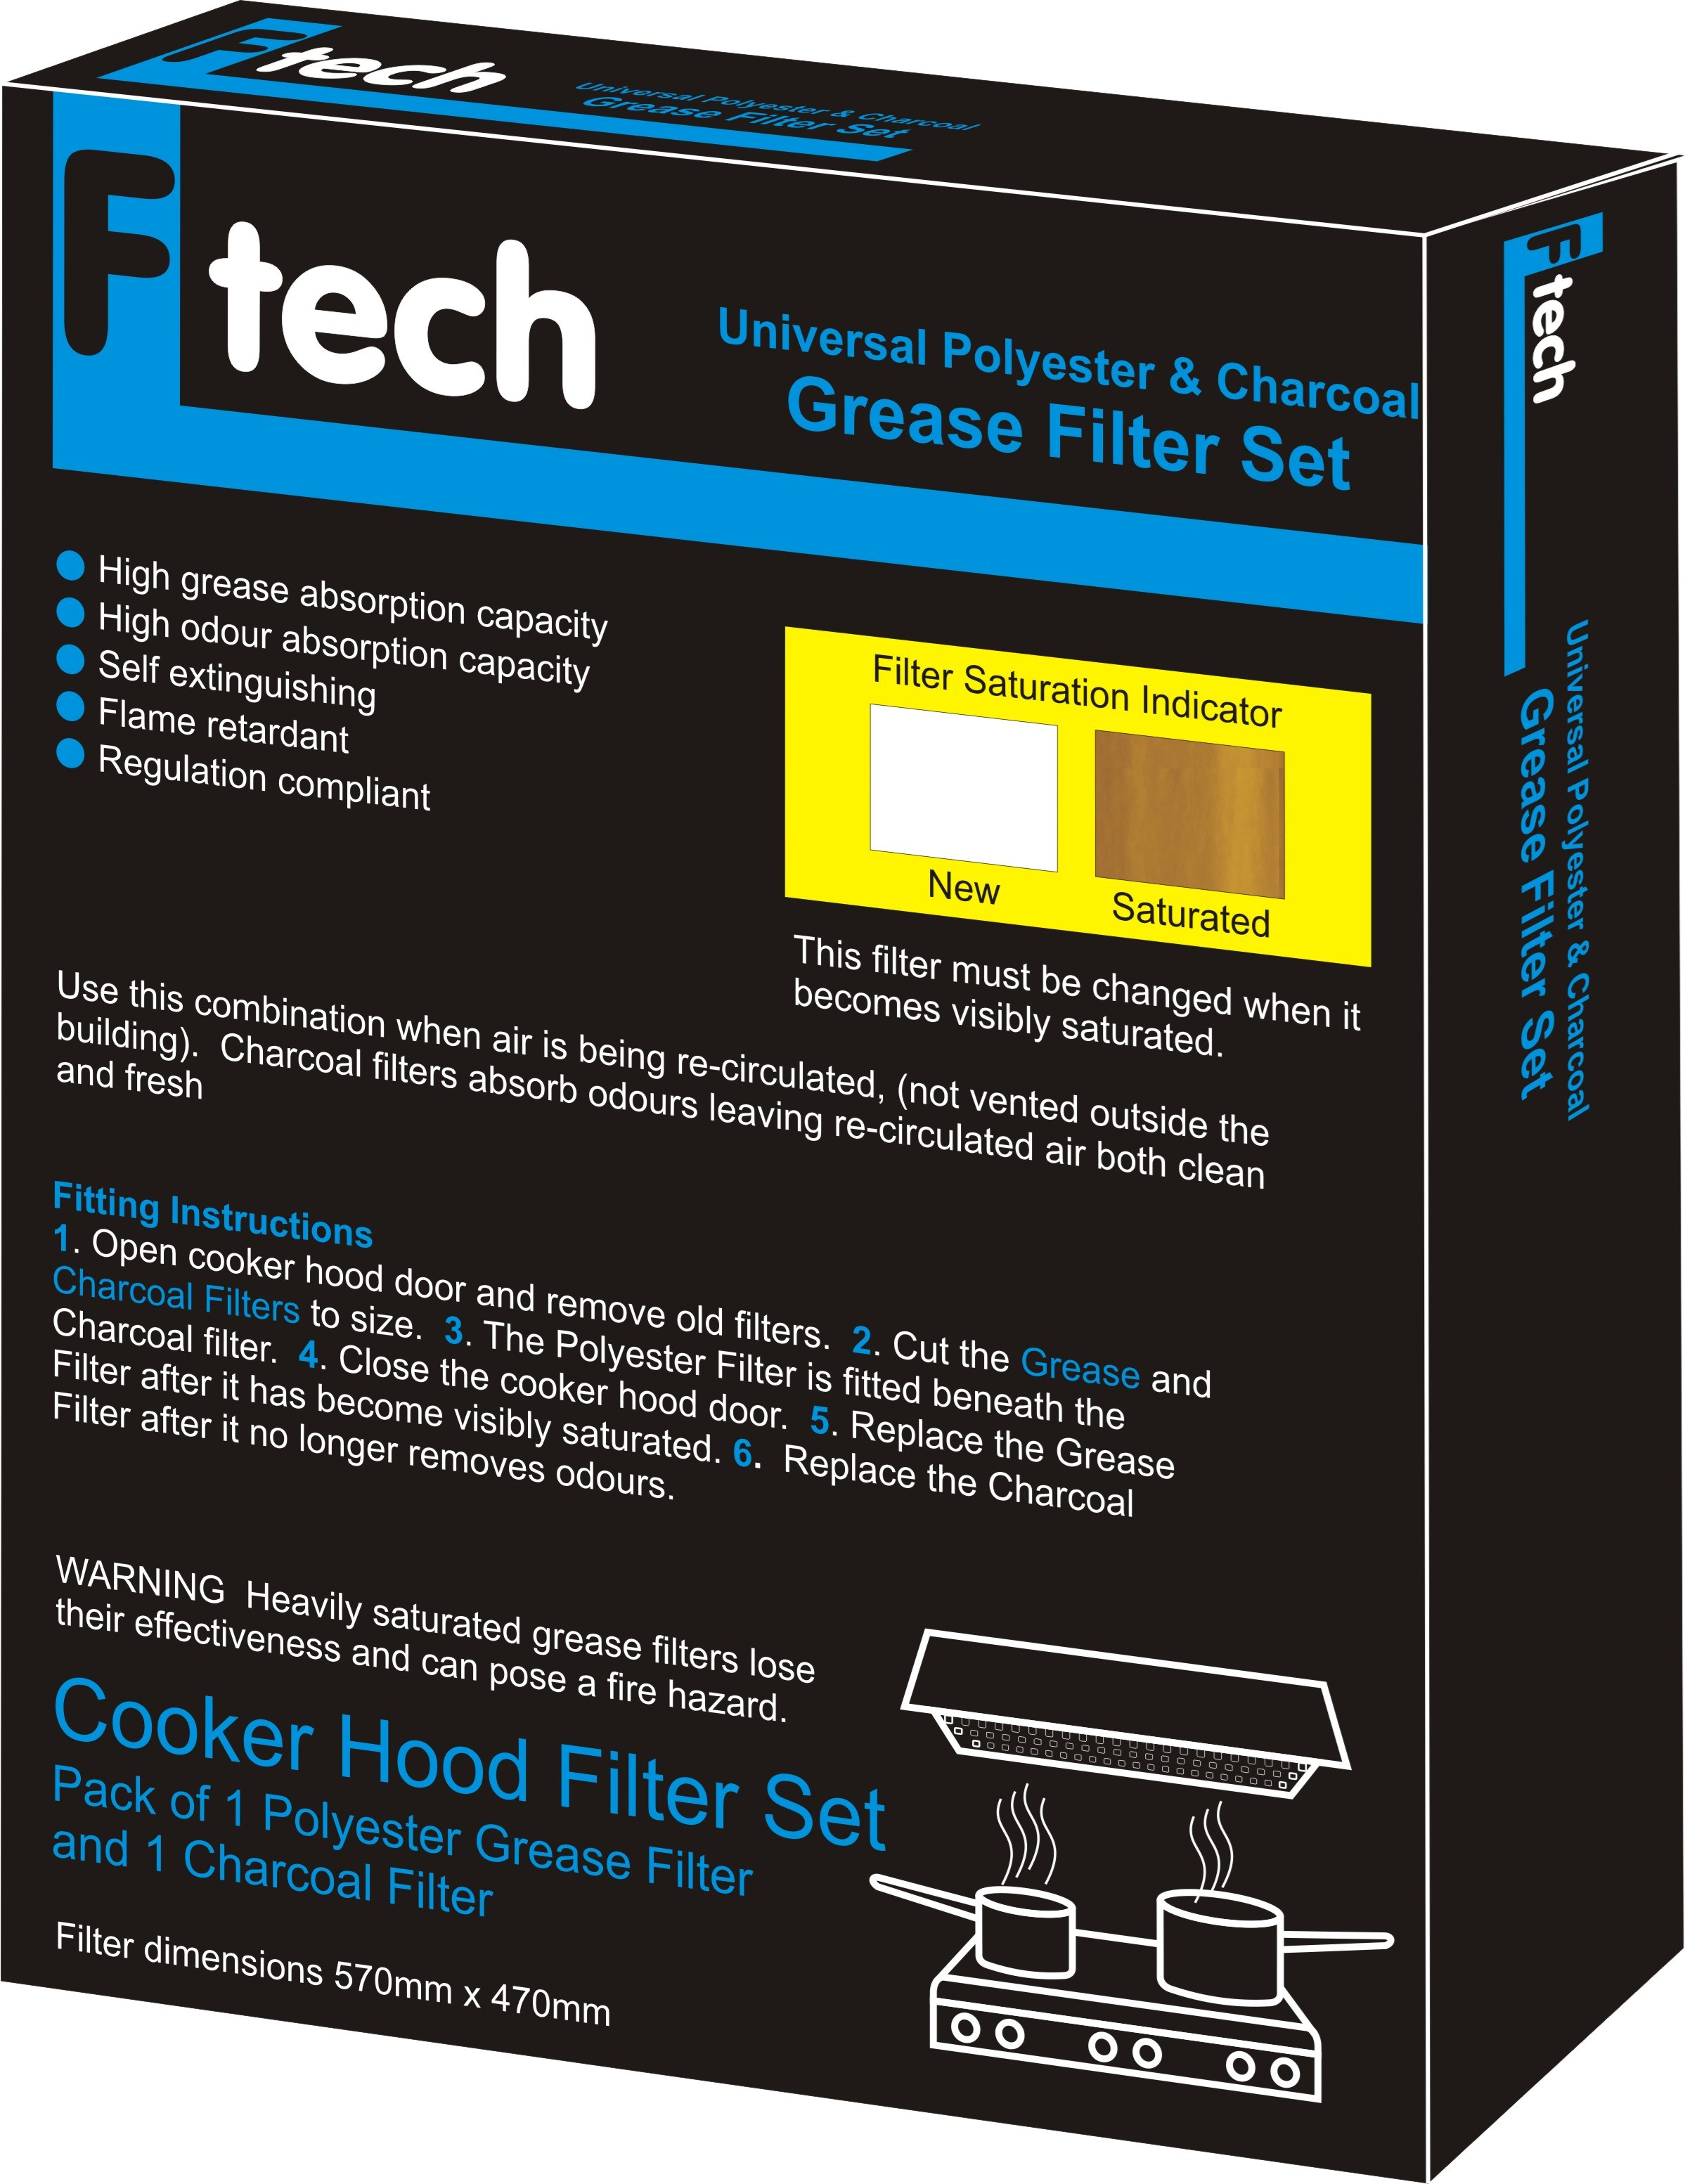 Fiber Tech  Blue Universal Polyester & Charcoal Grease Filter Set